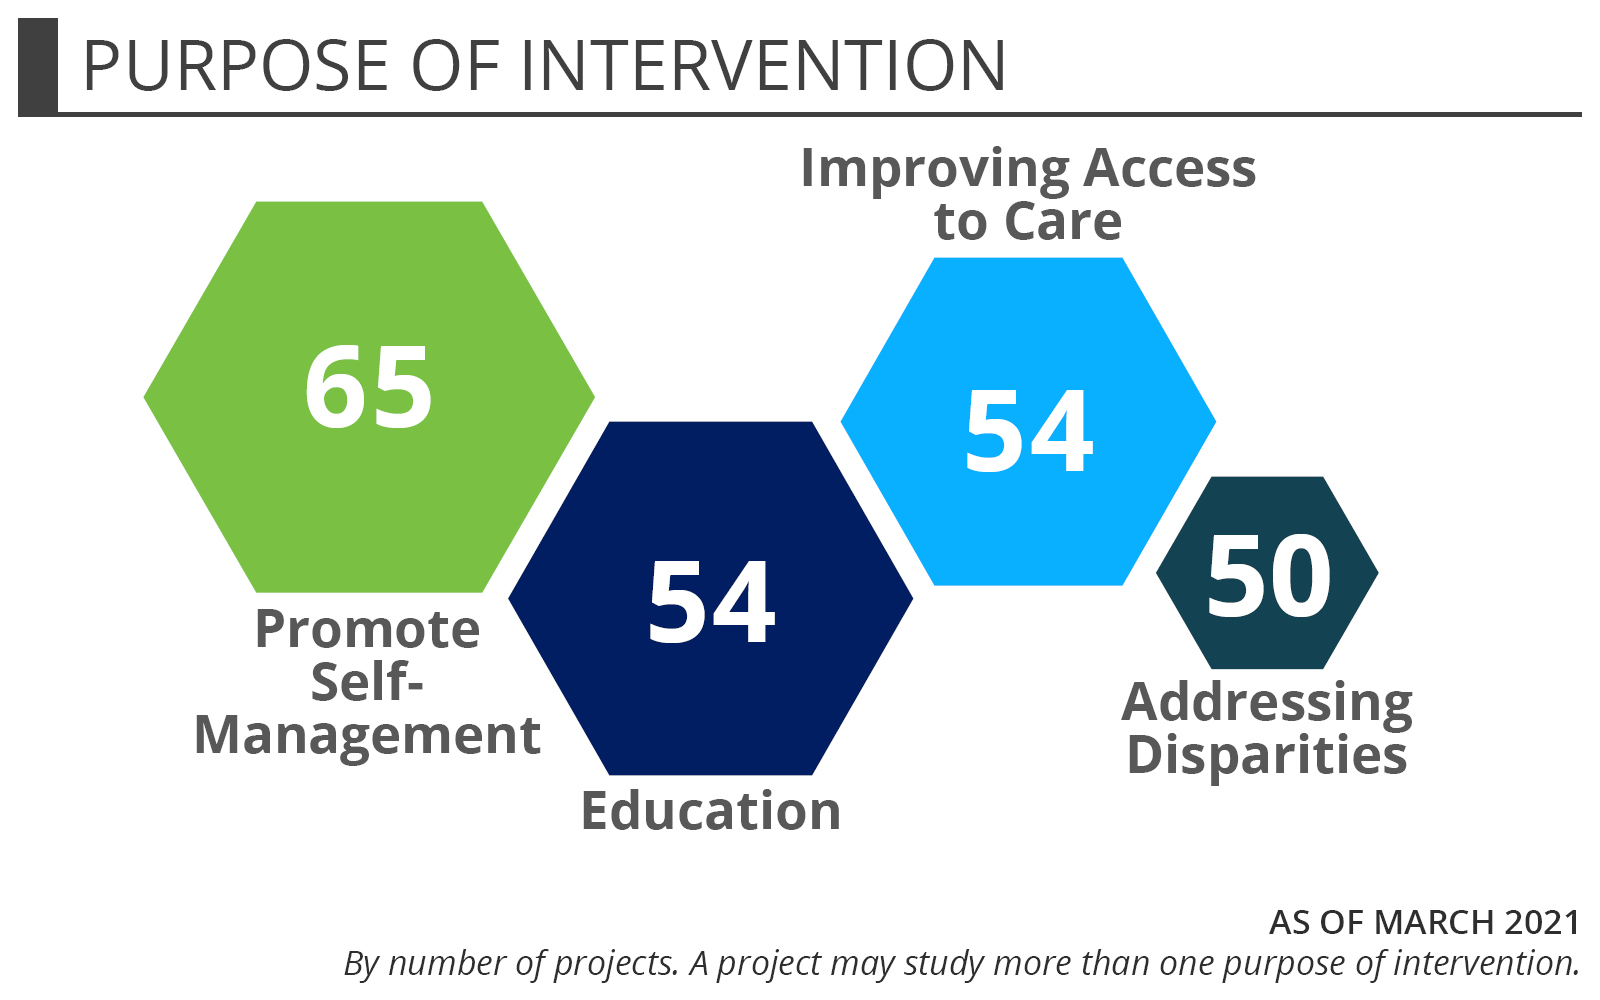 Telehealth Purpose of Intervention - Promote Self-Management (42) Education (36) Improve Access to Specialty Care (20) Remote Monitoring (10). As of November 2017